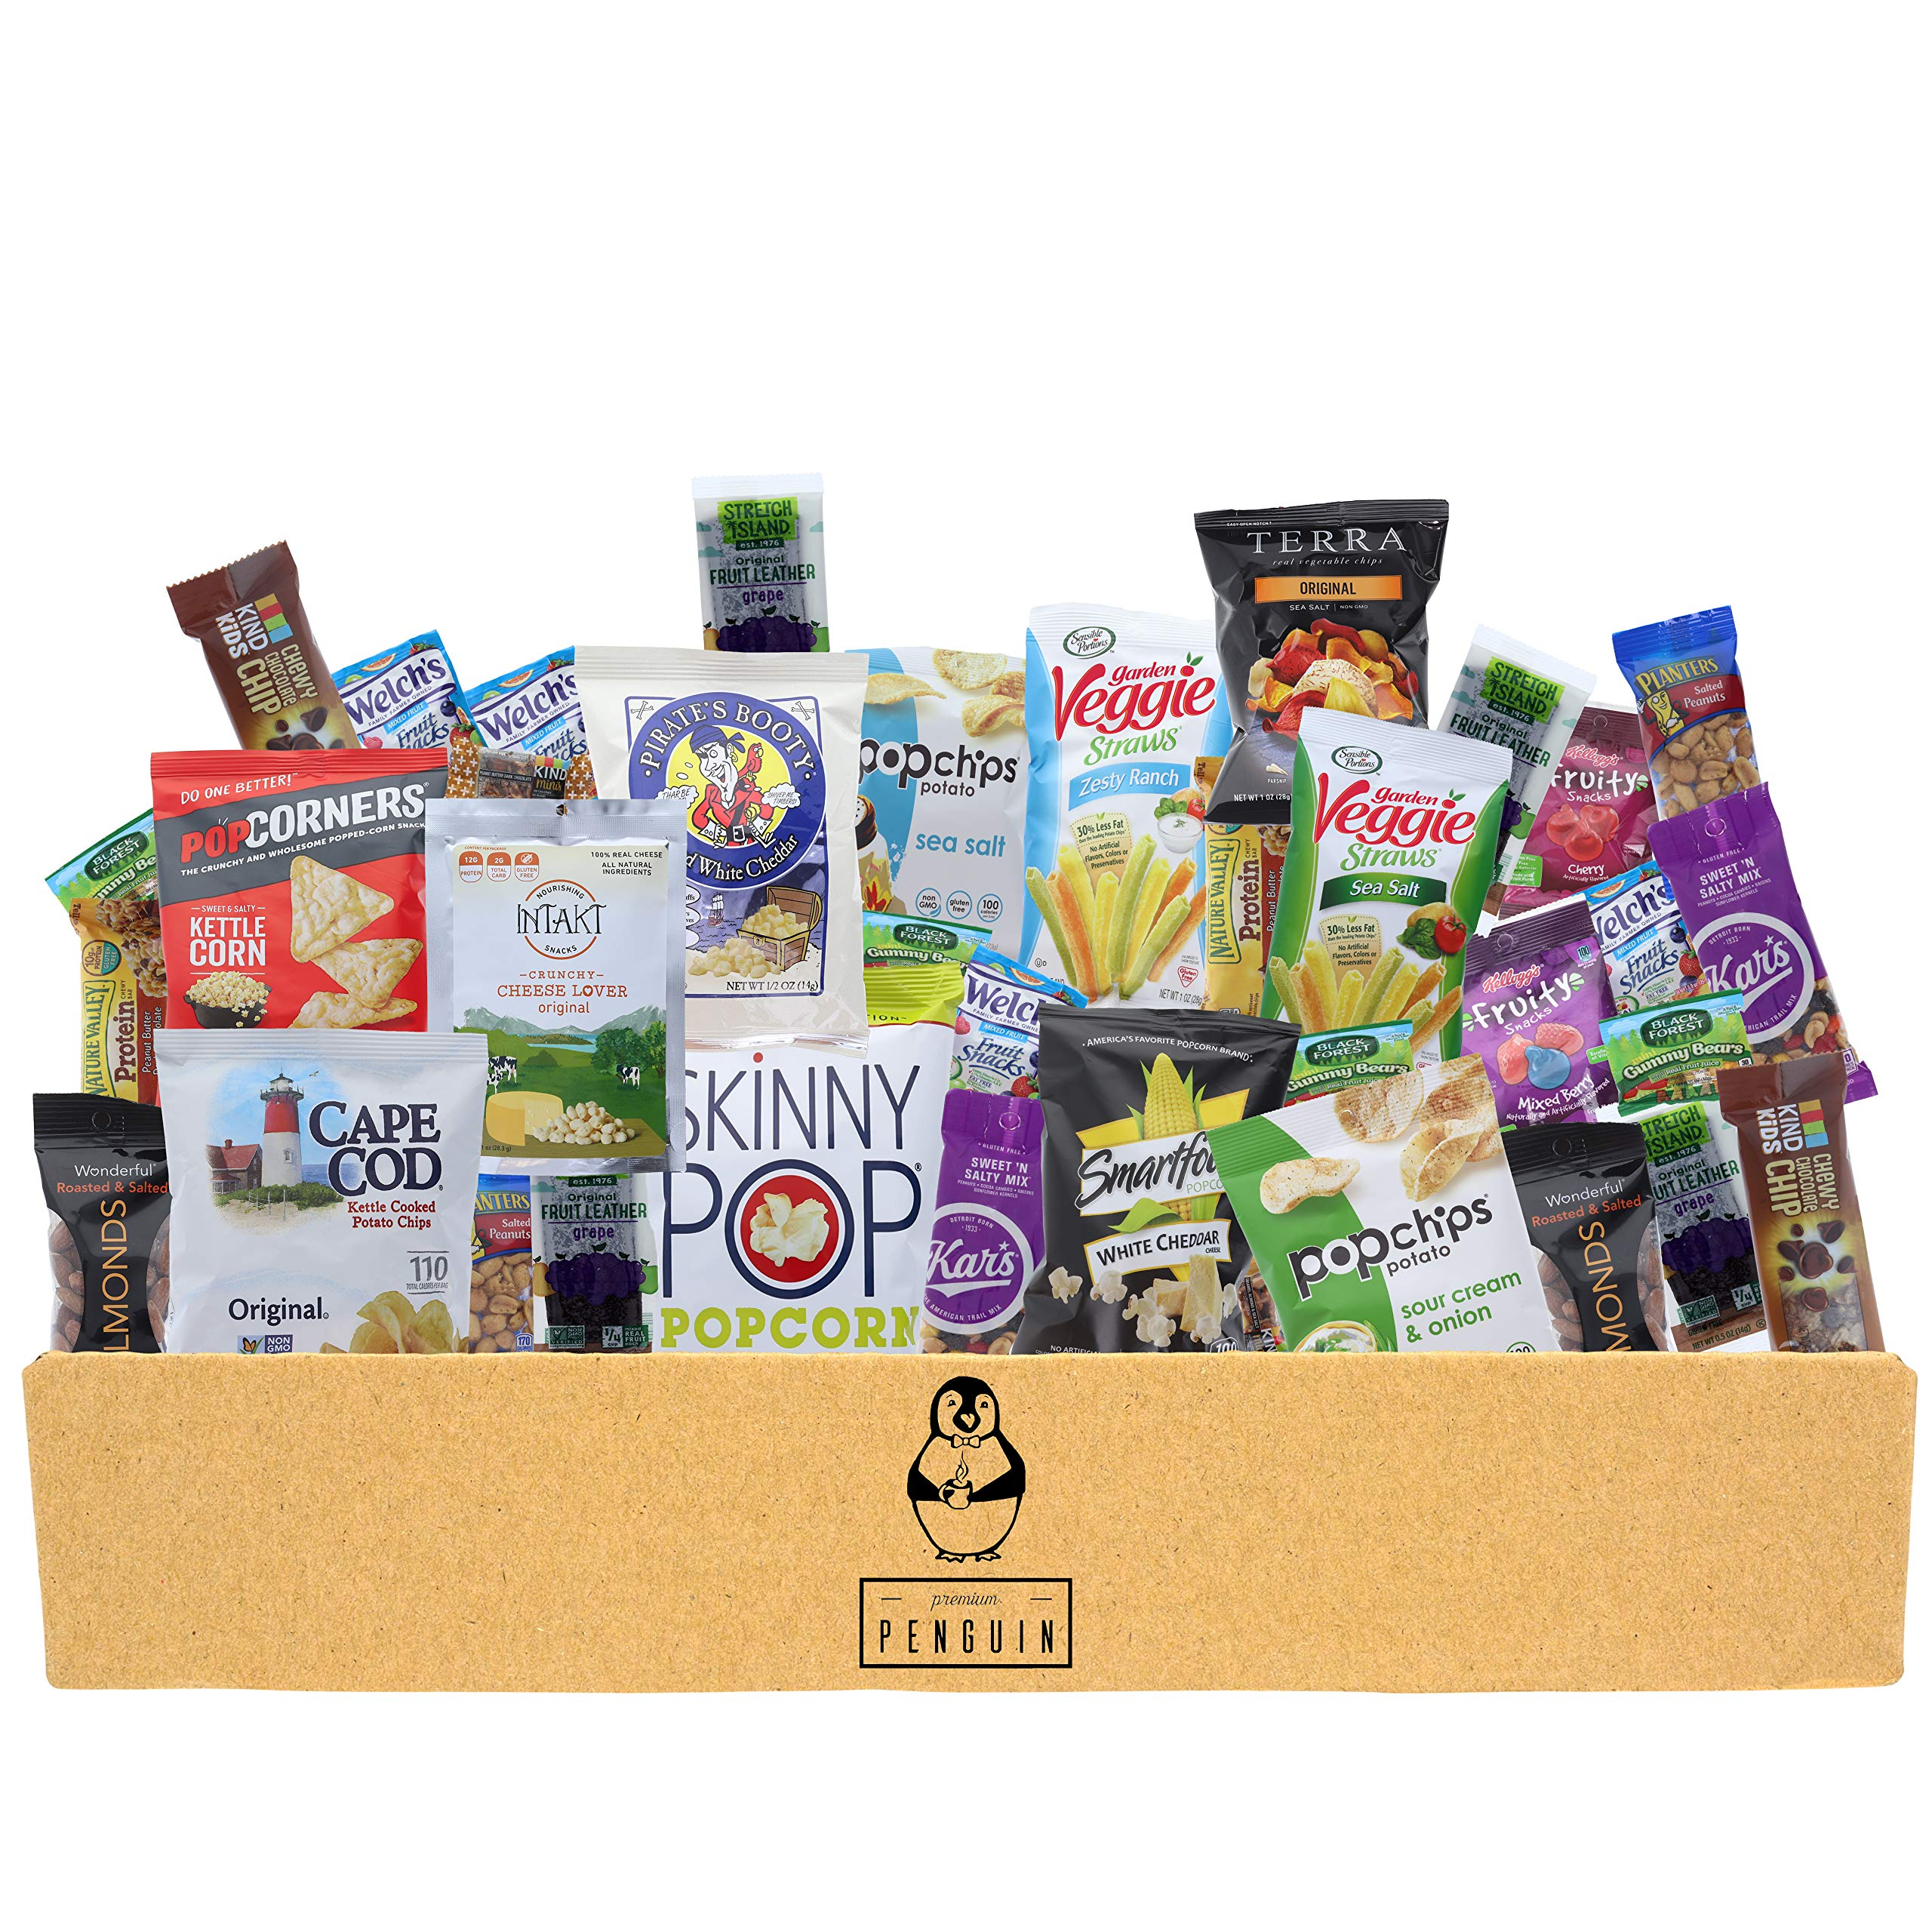 Gluten Free Snacks Care Package - 38 Count of Chips, Popcorn, Nuts, Granola Bars, Gummy Snacks, and More! Perfect for School, Office, Military, and More! by Premium Penguin